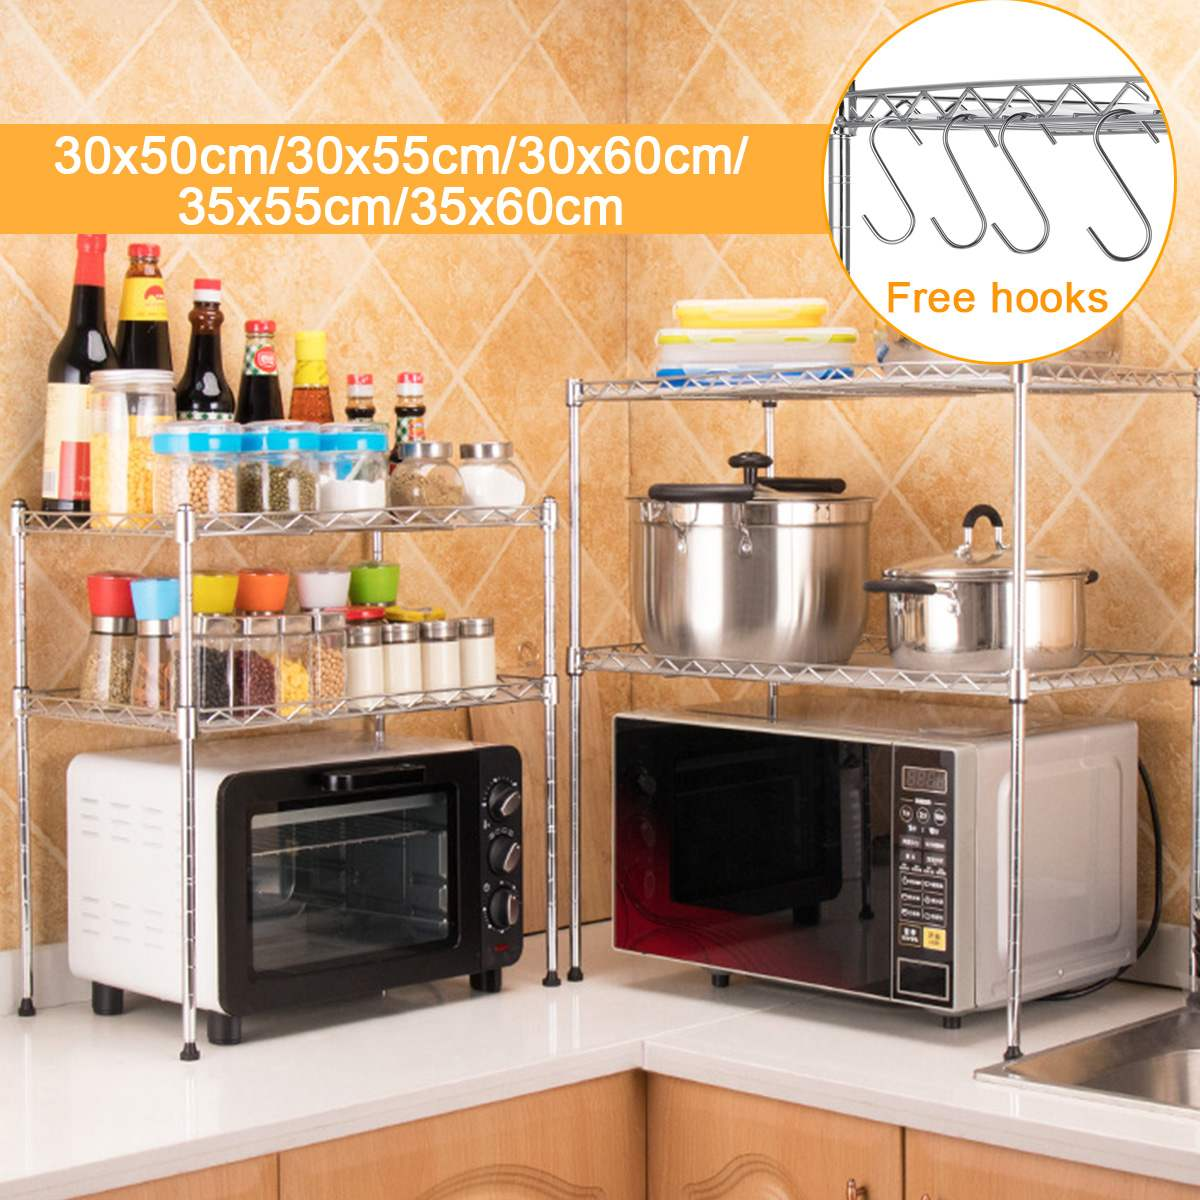 Stainless Steel Double-layer Large Capacity Microwave Oven Rack + Hook Kitchen Storage Holder Kitchen Appliances Storage